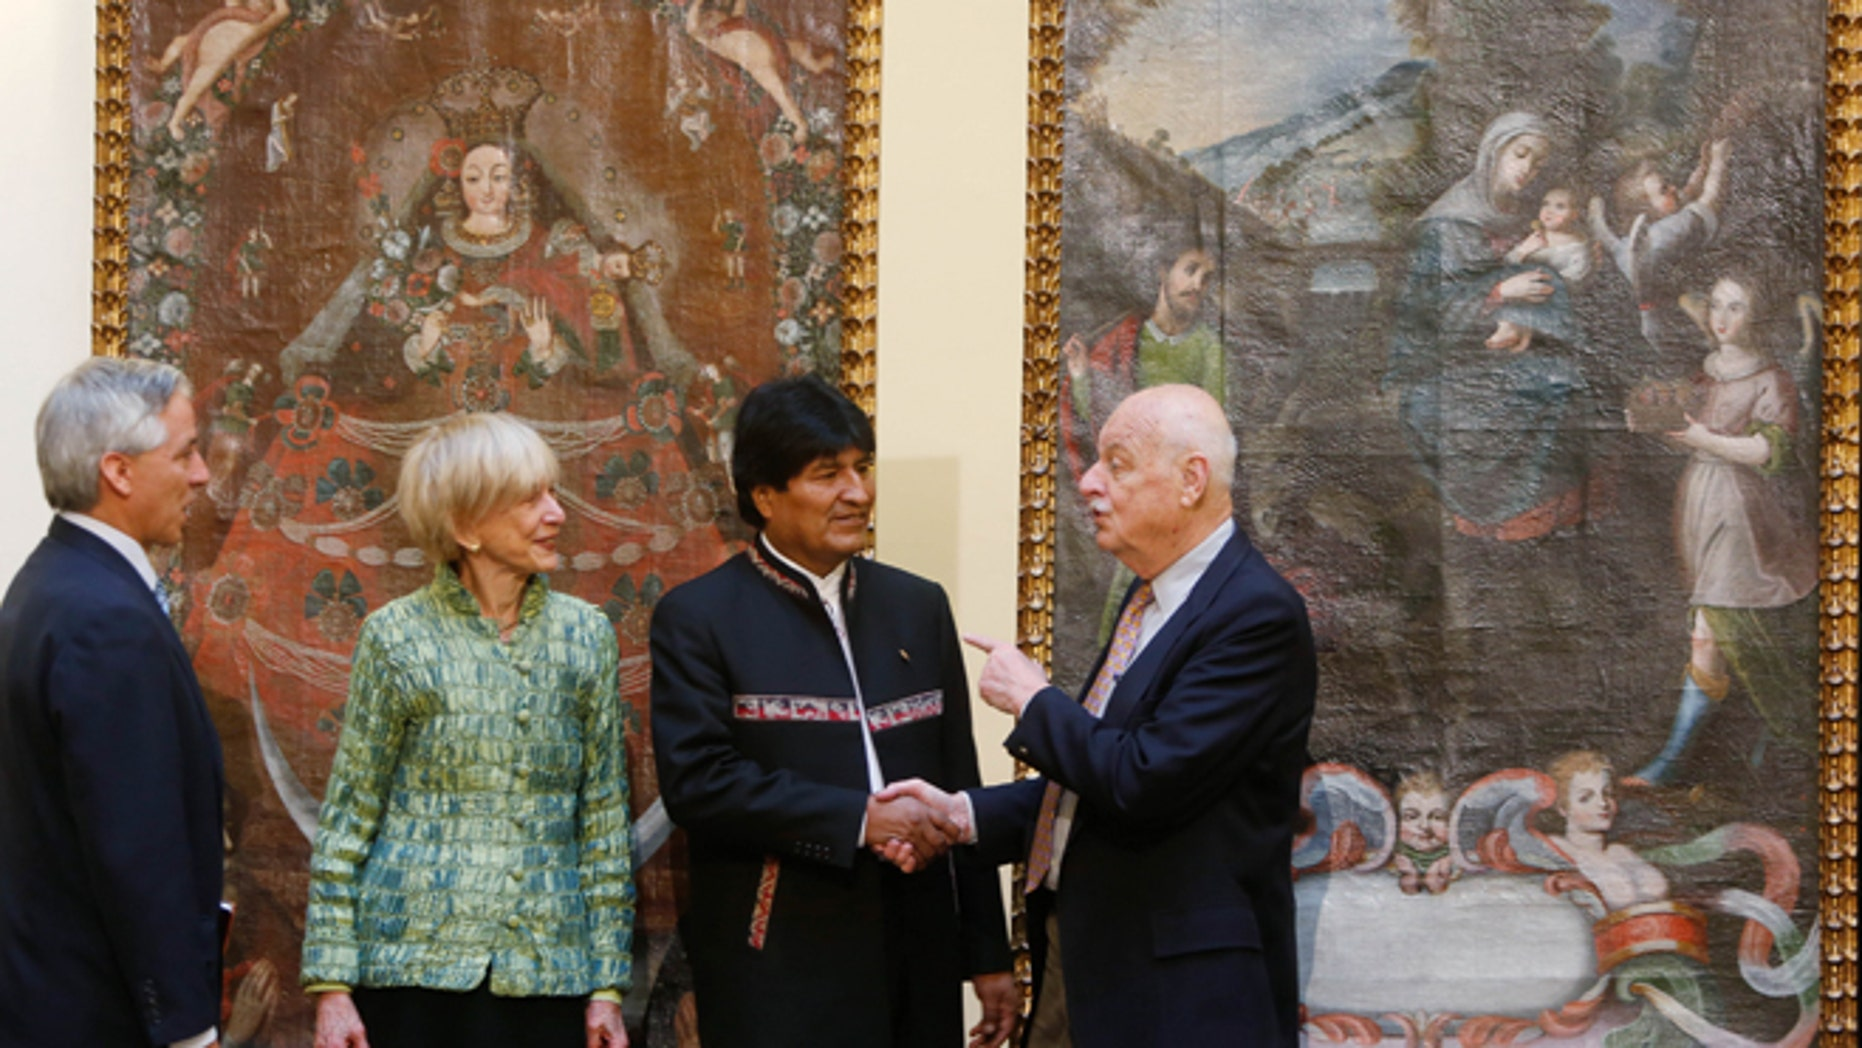 "Backdropped by the paintings ""Virgin of Candelaria,"" and  ""Escape to Egypt,"" Bolivia's President Evo Morales, second from right, shakes hands with Richard Huber, right, as Roberta Huber, second from left, and Bolivia's Vice President Alvaro Garcia, watch, during a ceremony recognizing the return of the stolen art, at the government palace, in La Paz, Bolivia, Thursday, April 9, 2015. Avid collectors, the Hubers returned the art work after learning from a museum that the two large paintings had been reported stolen from a Catholic church in southern Bolivia. (AP Photo/Juan Karita)"